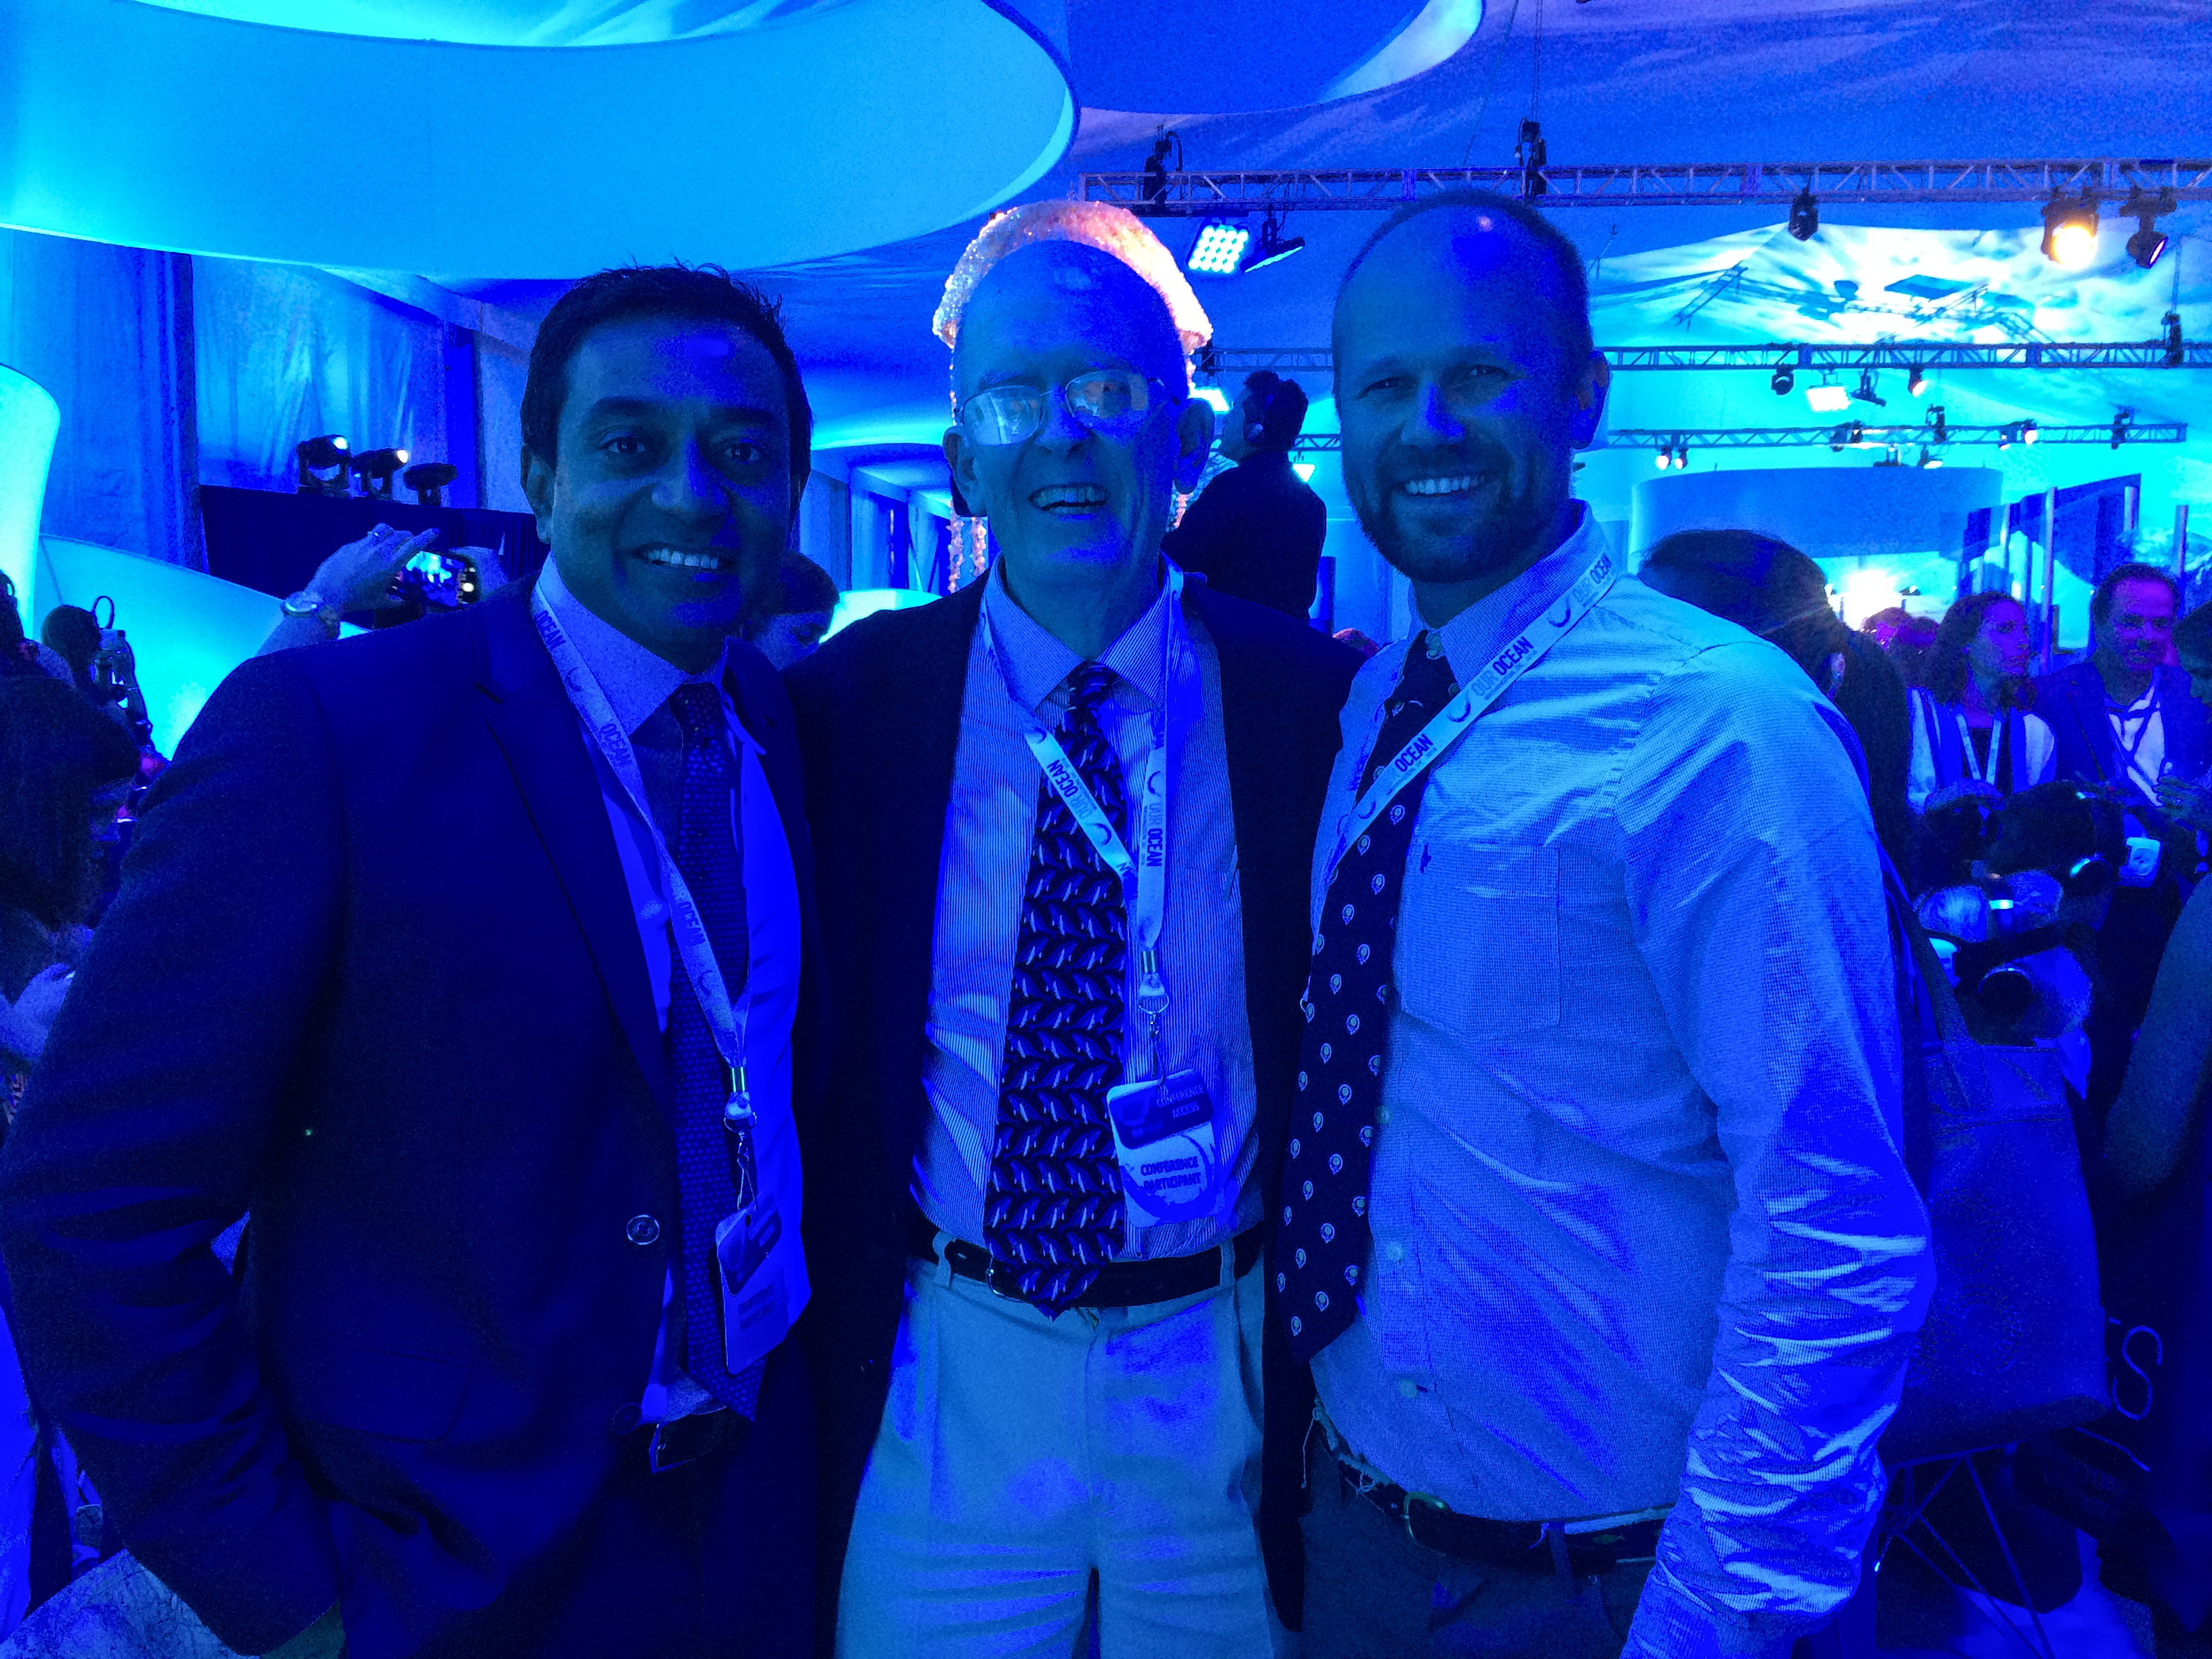 M. Sanjayan (Conservation International), Roger Payne, Andy Rogan